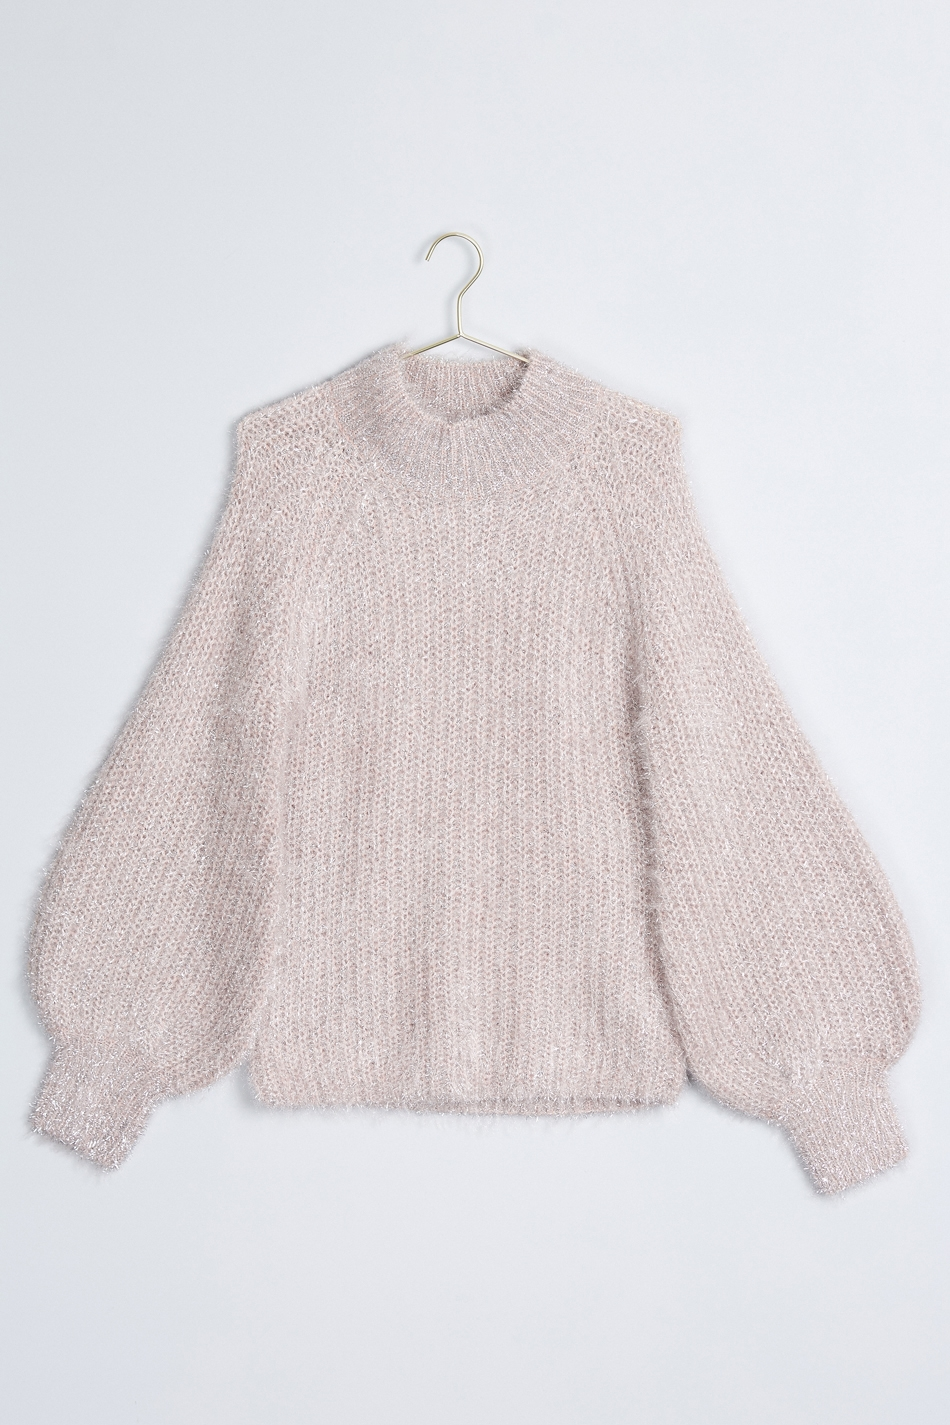 ... gabriella knitted sweater pink ljfswab